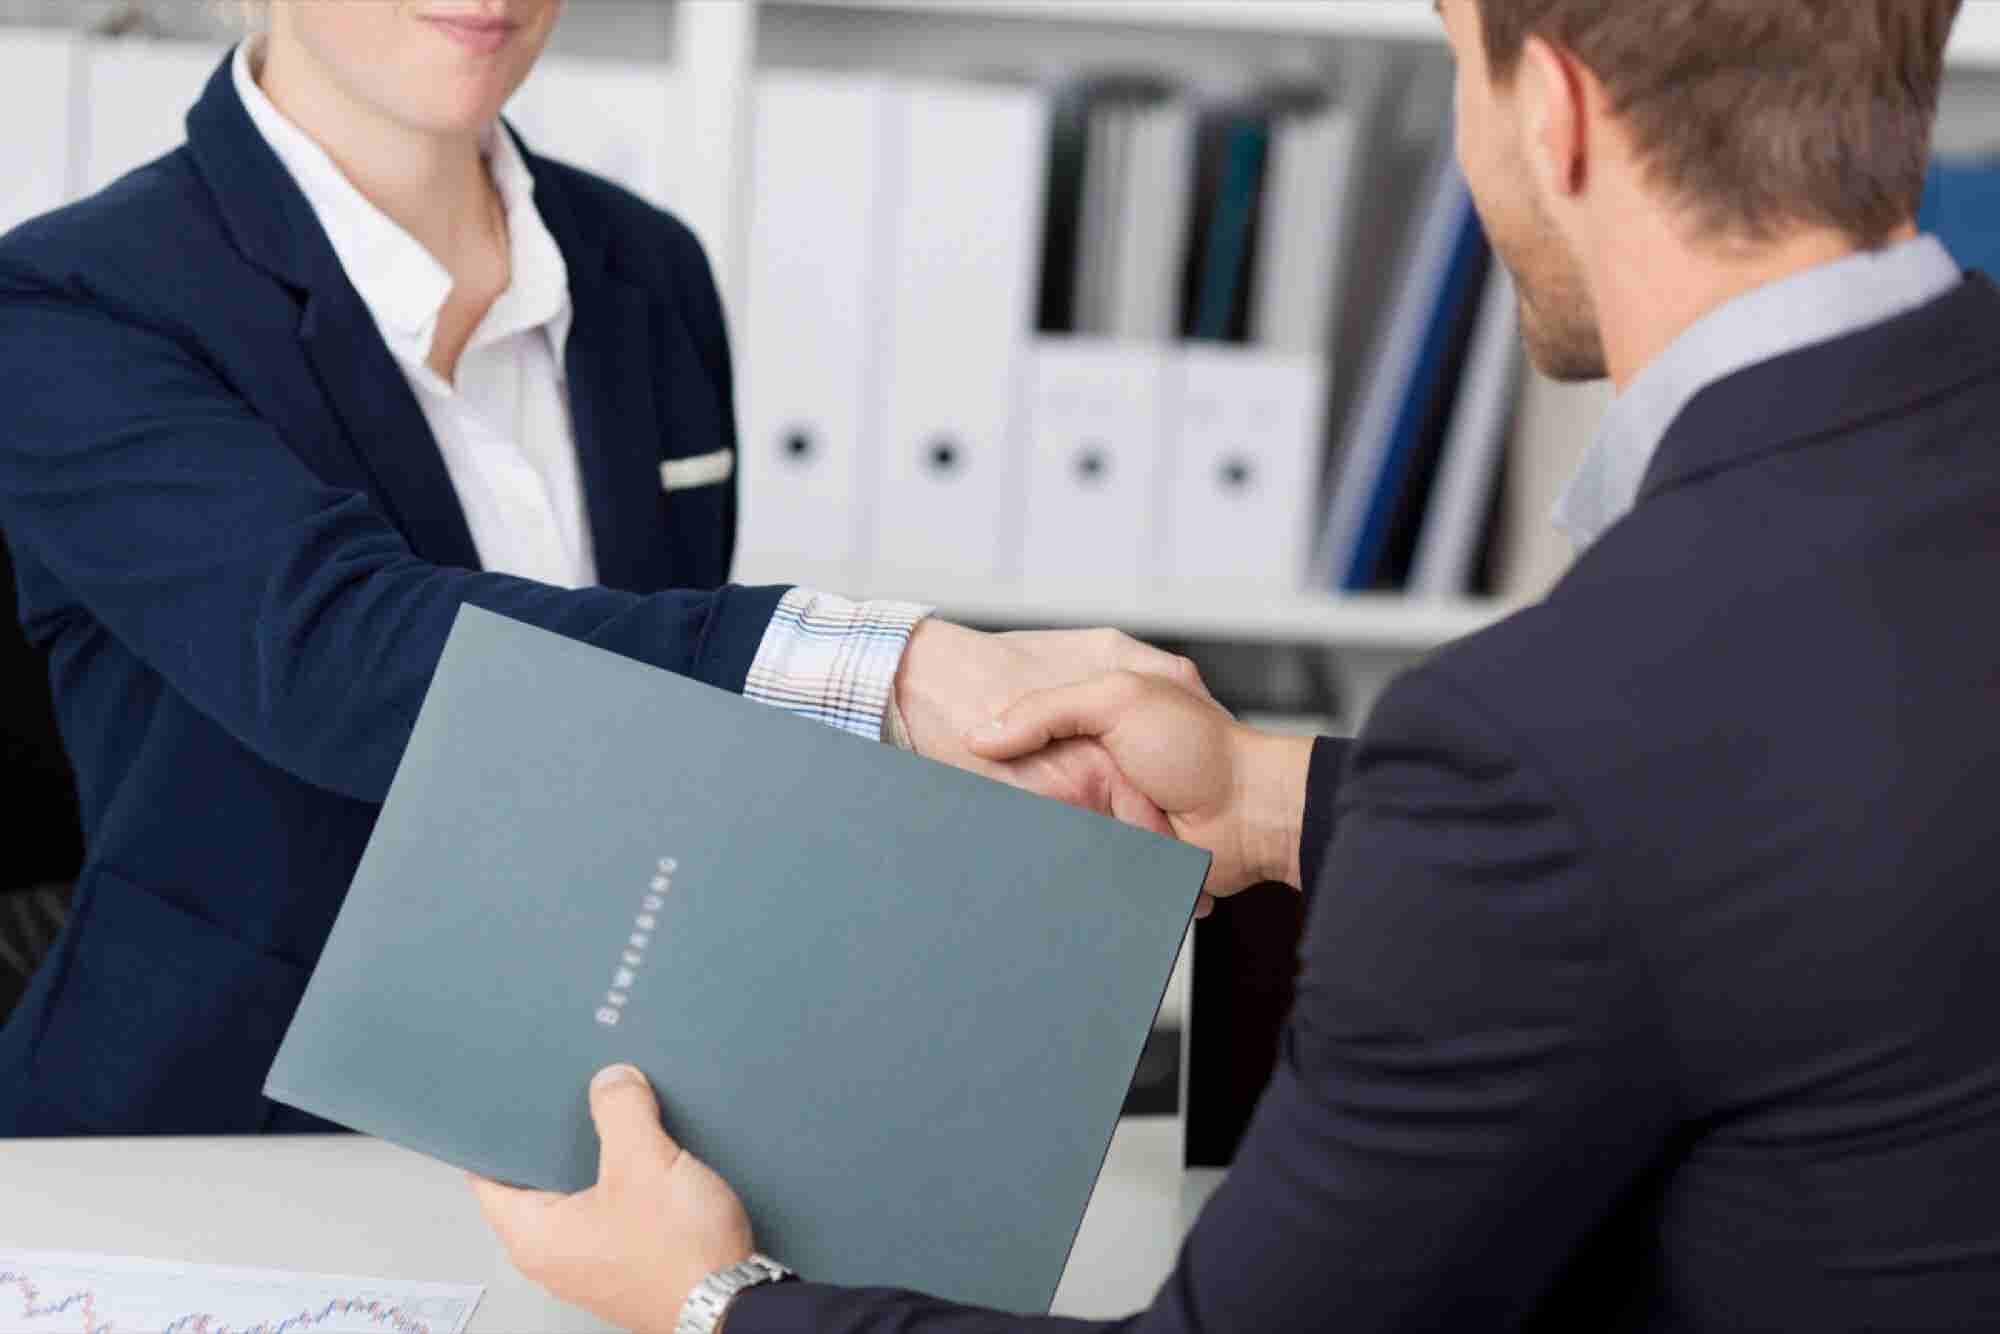 3 Ways to Start Looking at Managerial Candidates in a New and Better Way